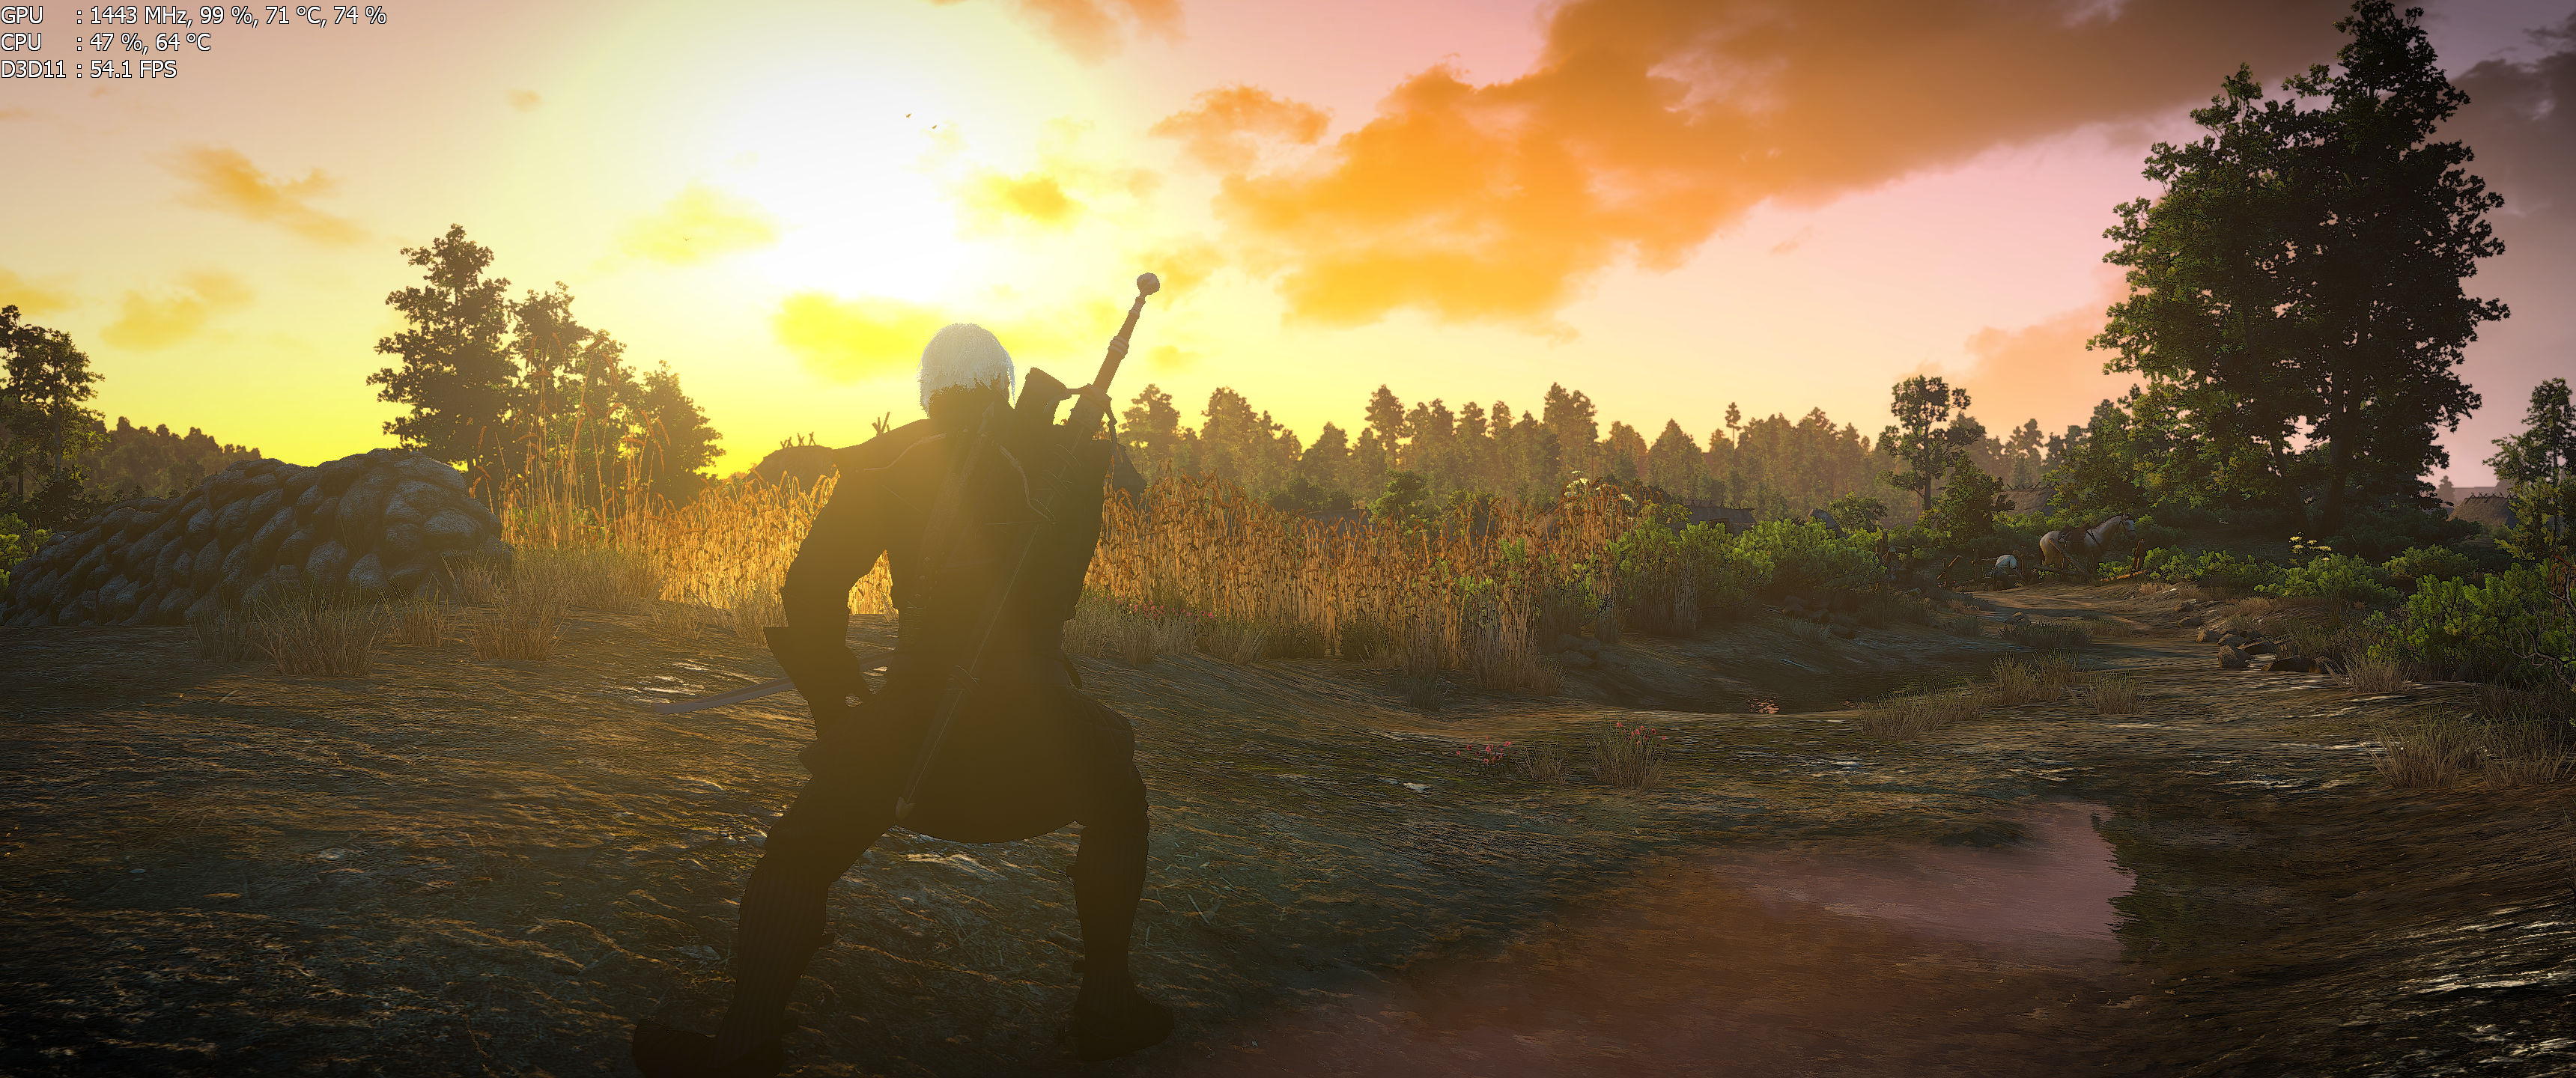 The Witcher 3 Screenshot 2017.11.21 - 15.12.27.47.png - Witcher 3: Wild Hunt, the